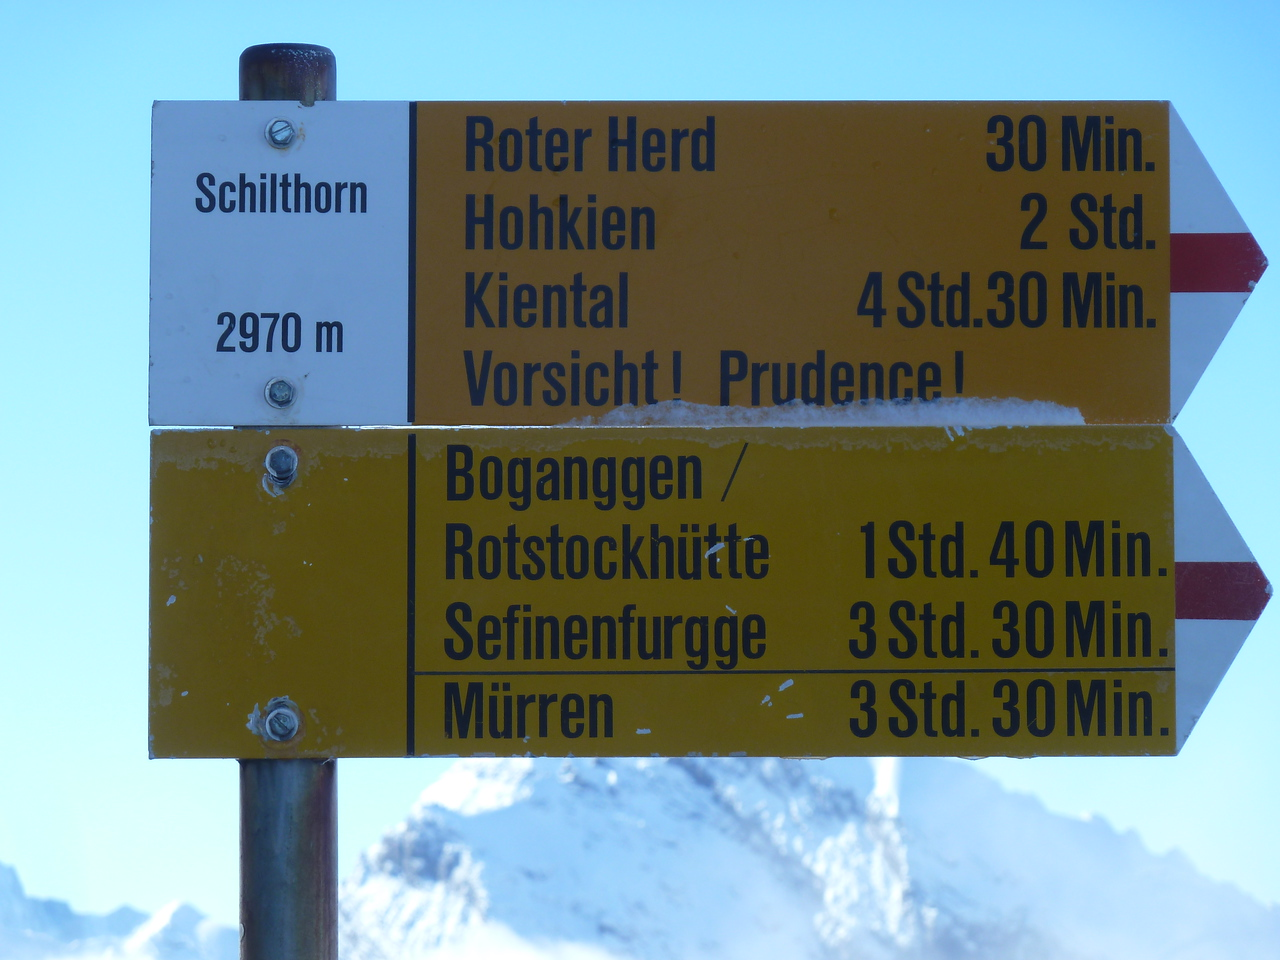 Hikes from the Schilthorn.